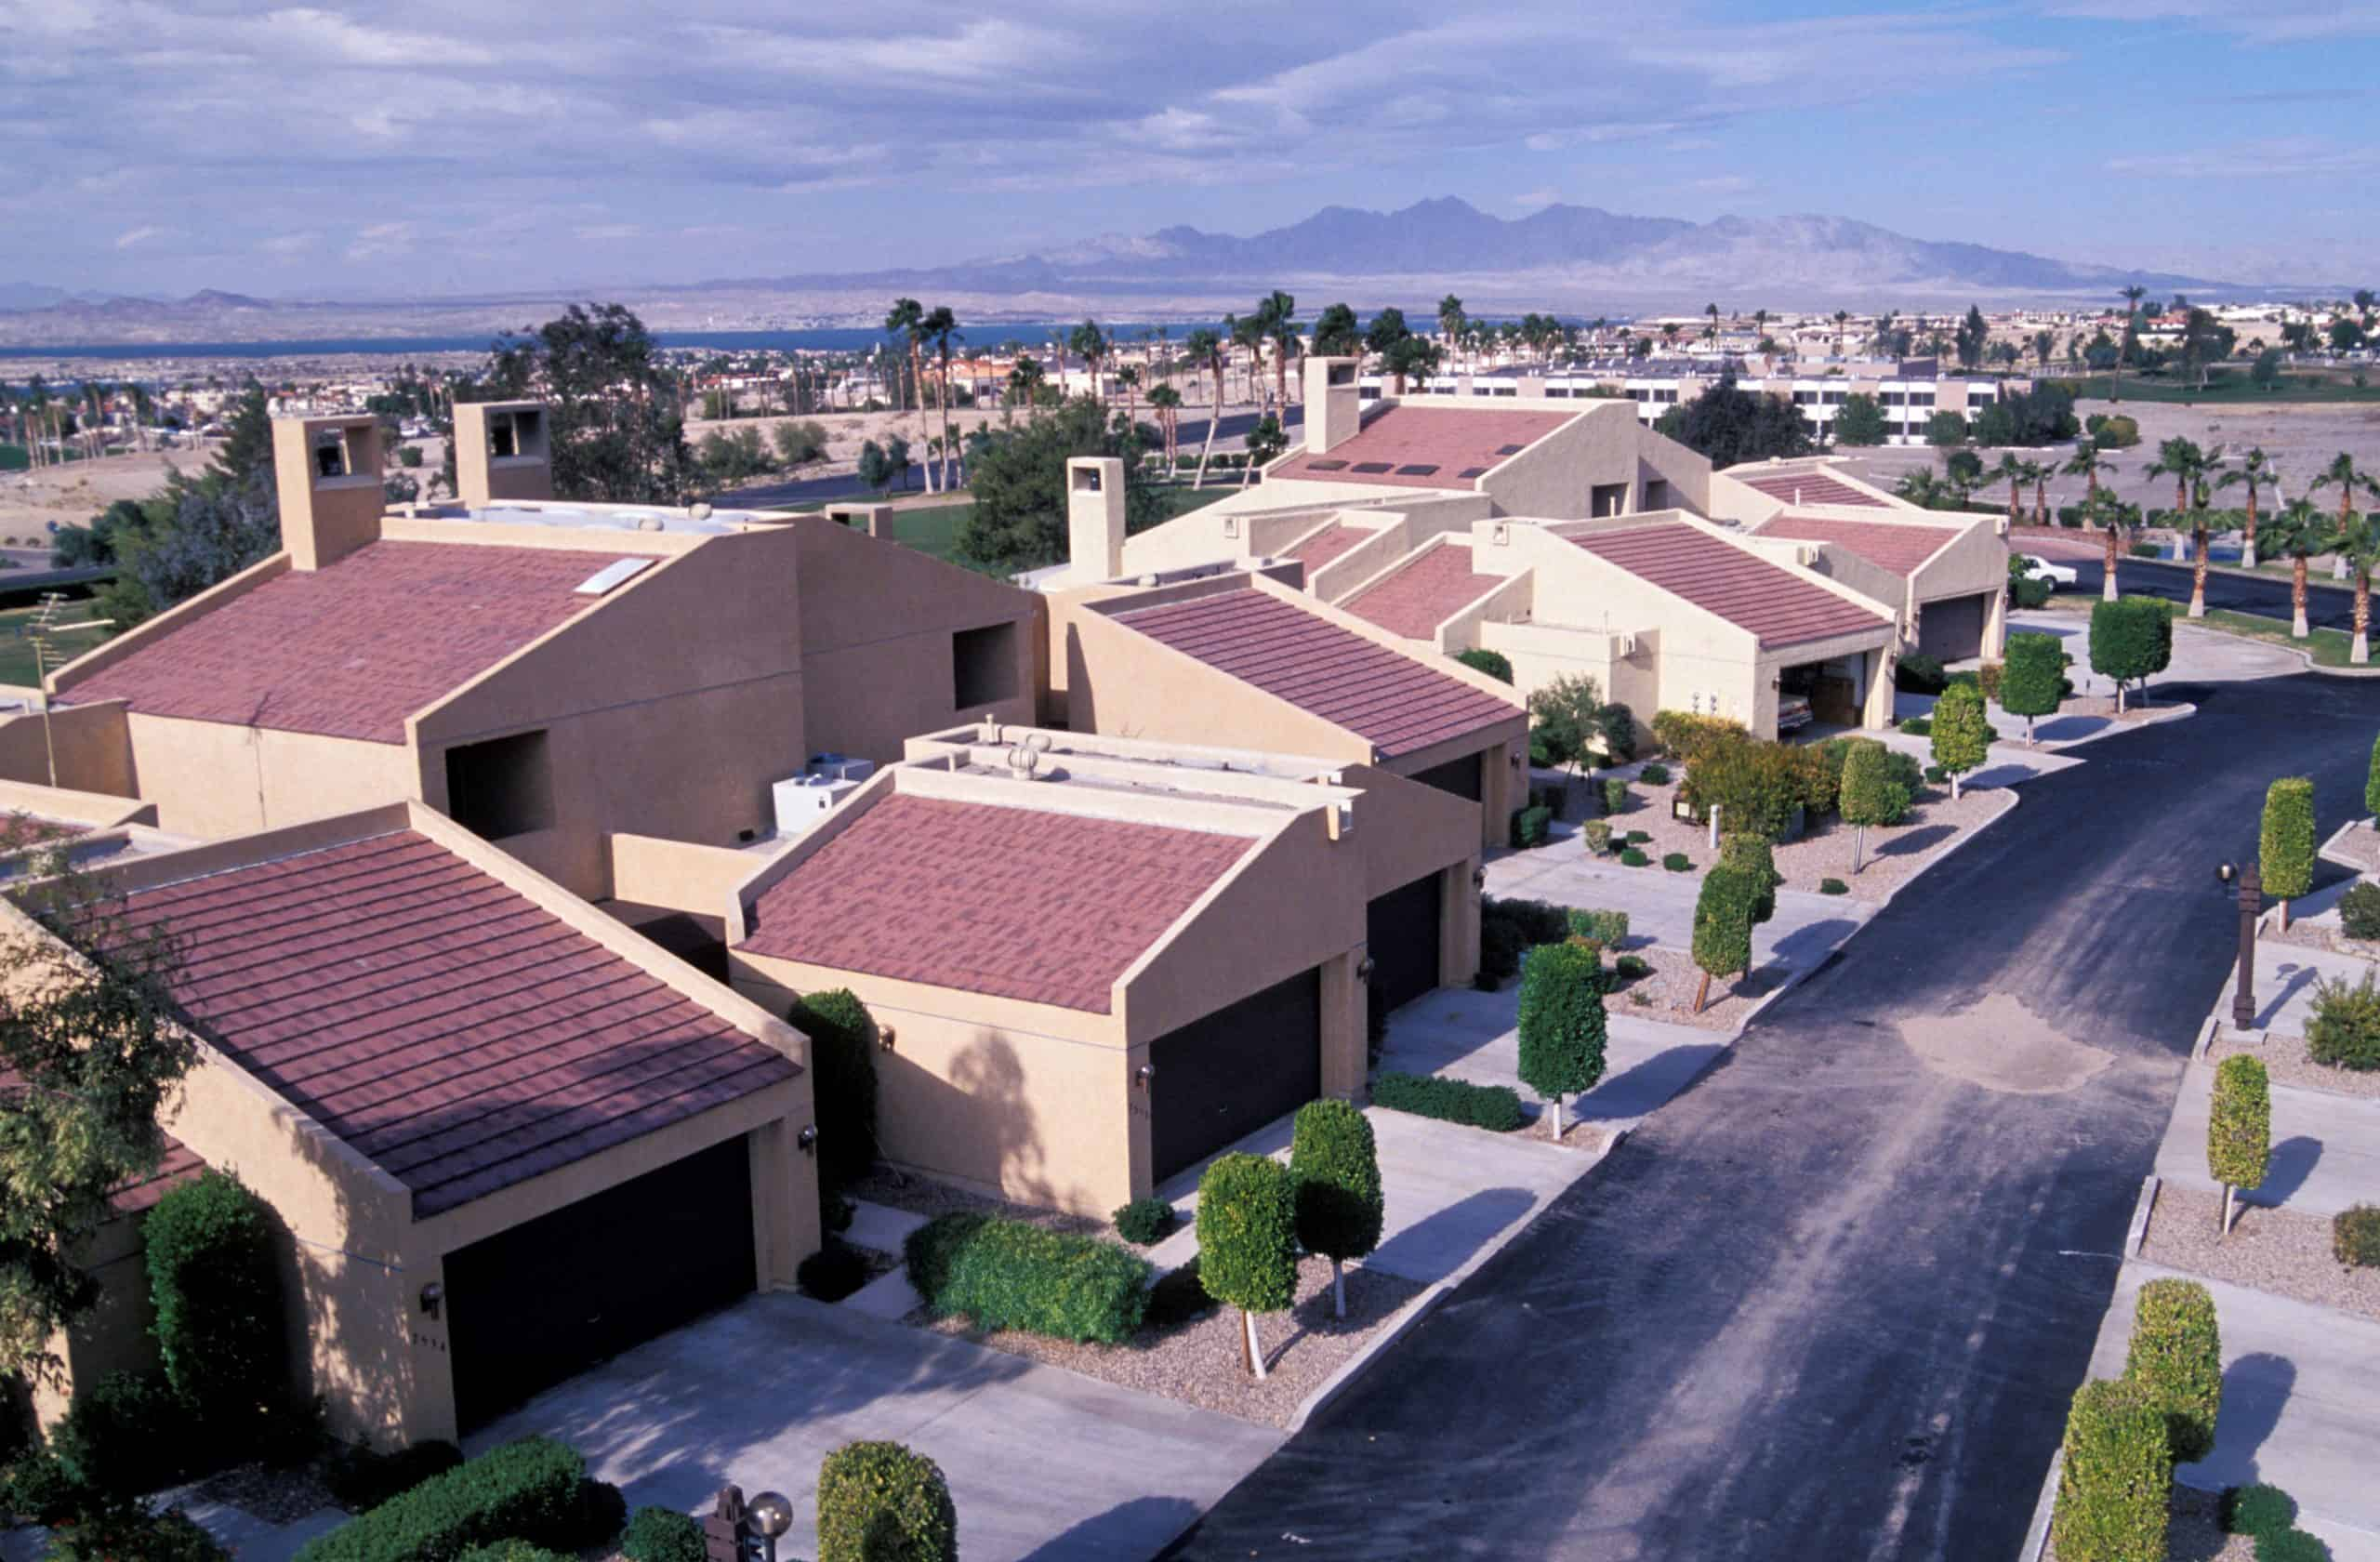 Regulations Approved for Phoenix Airbnbs